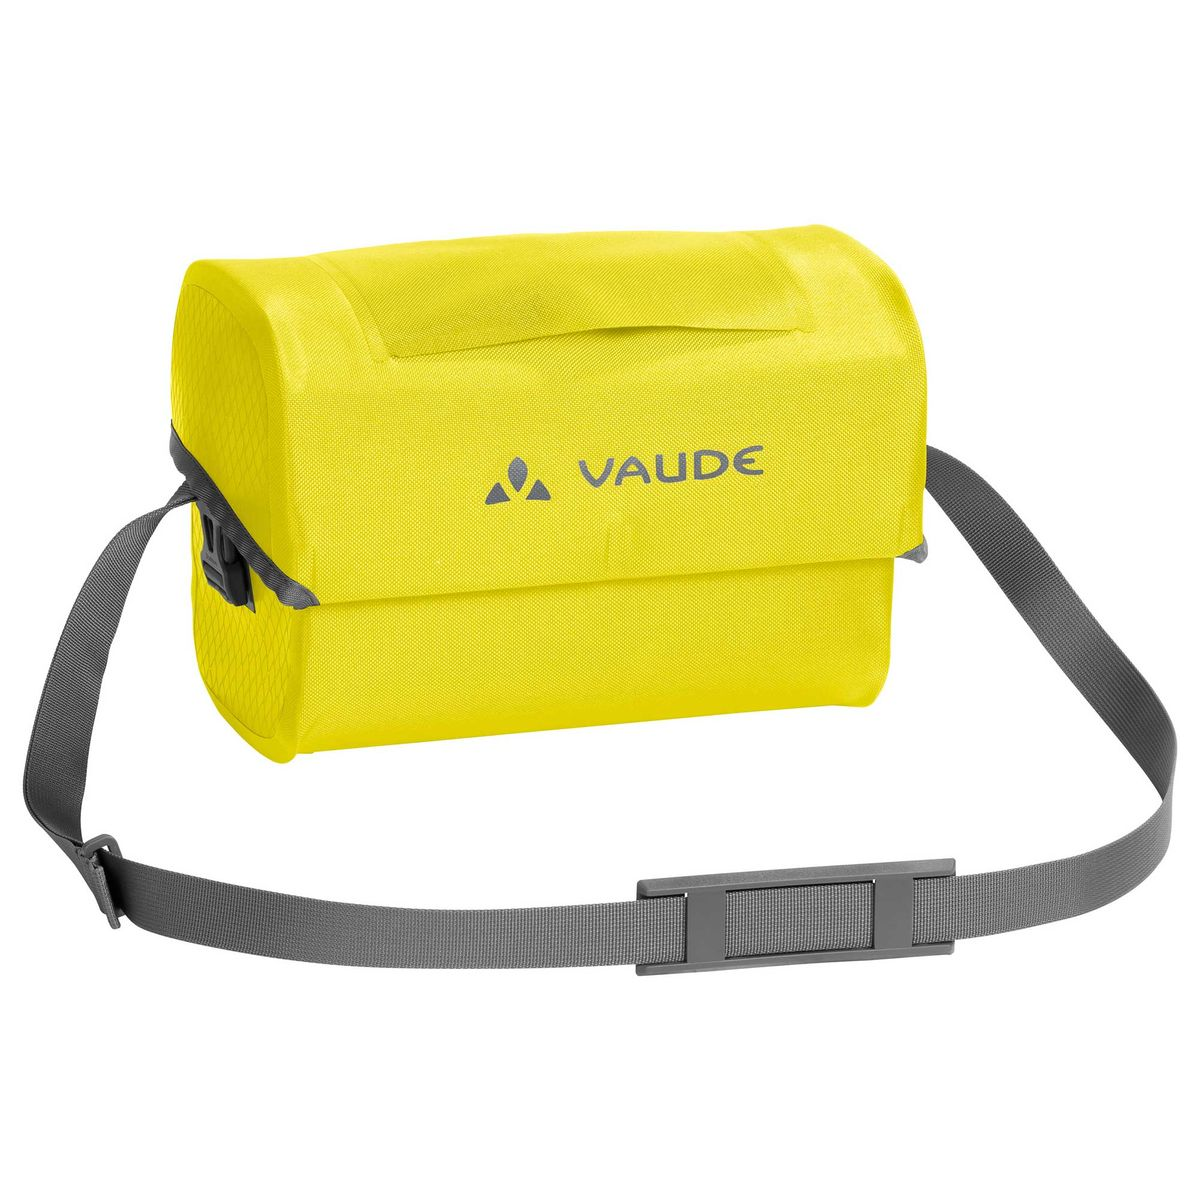 AQUA BOX II handlebar bag